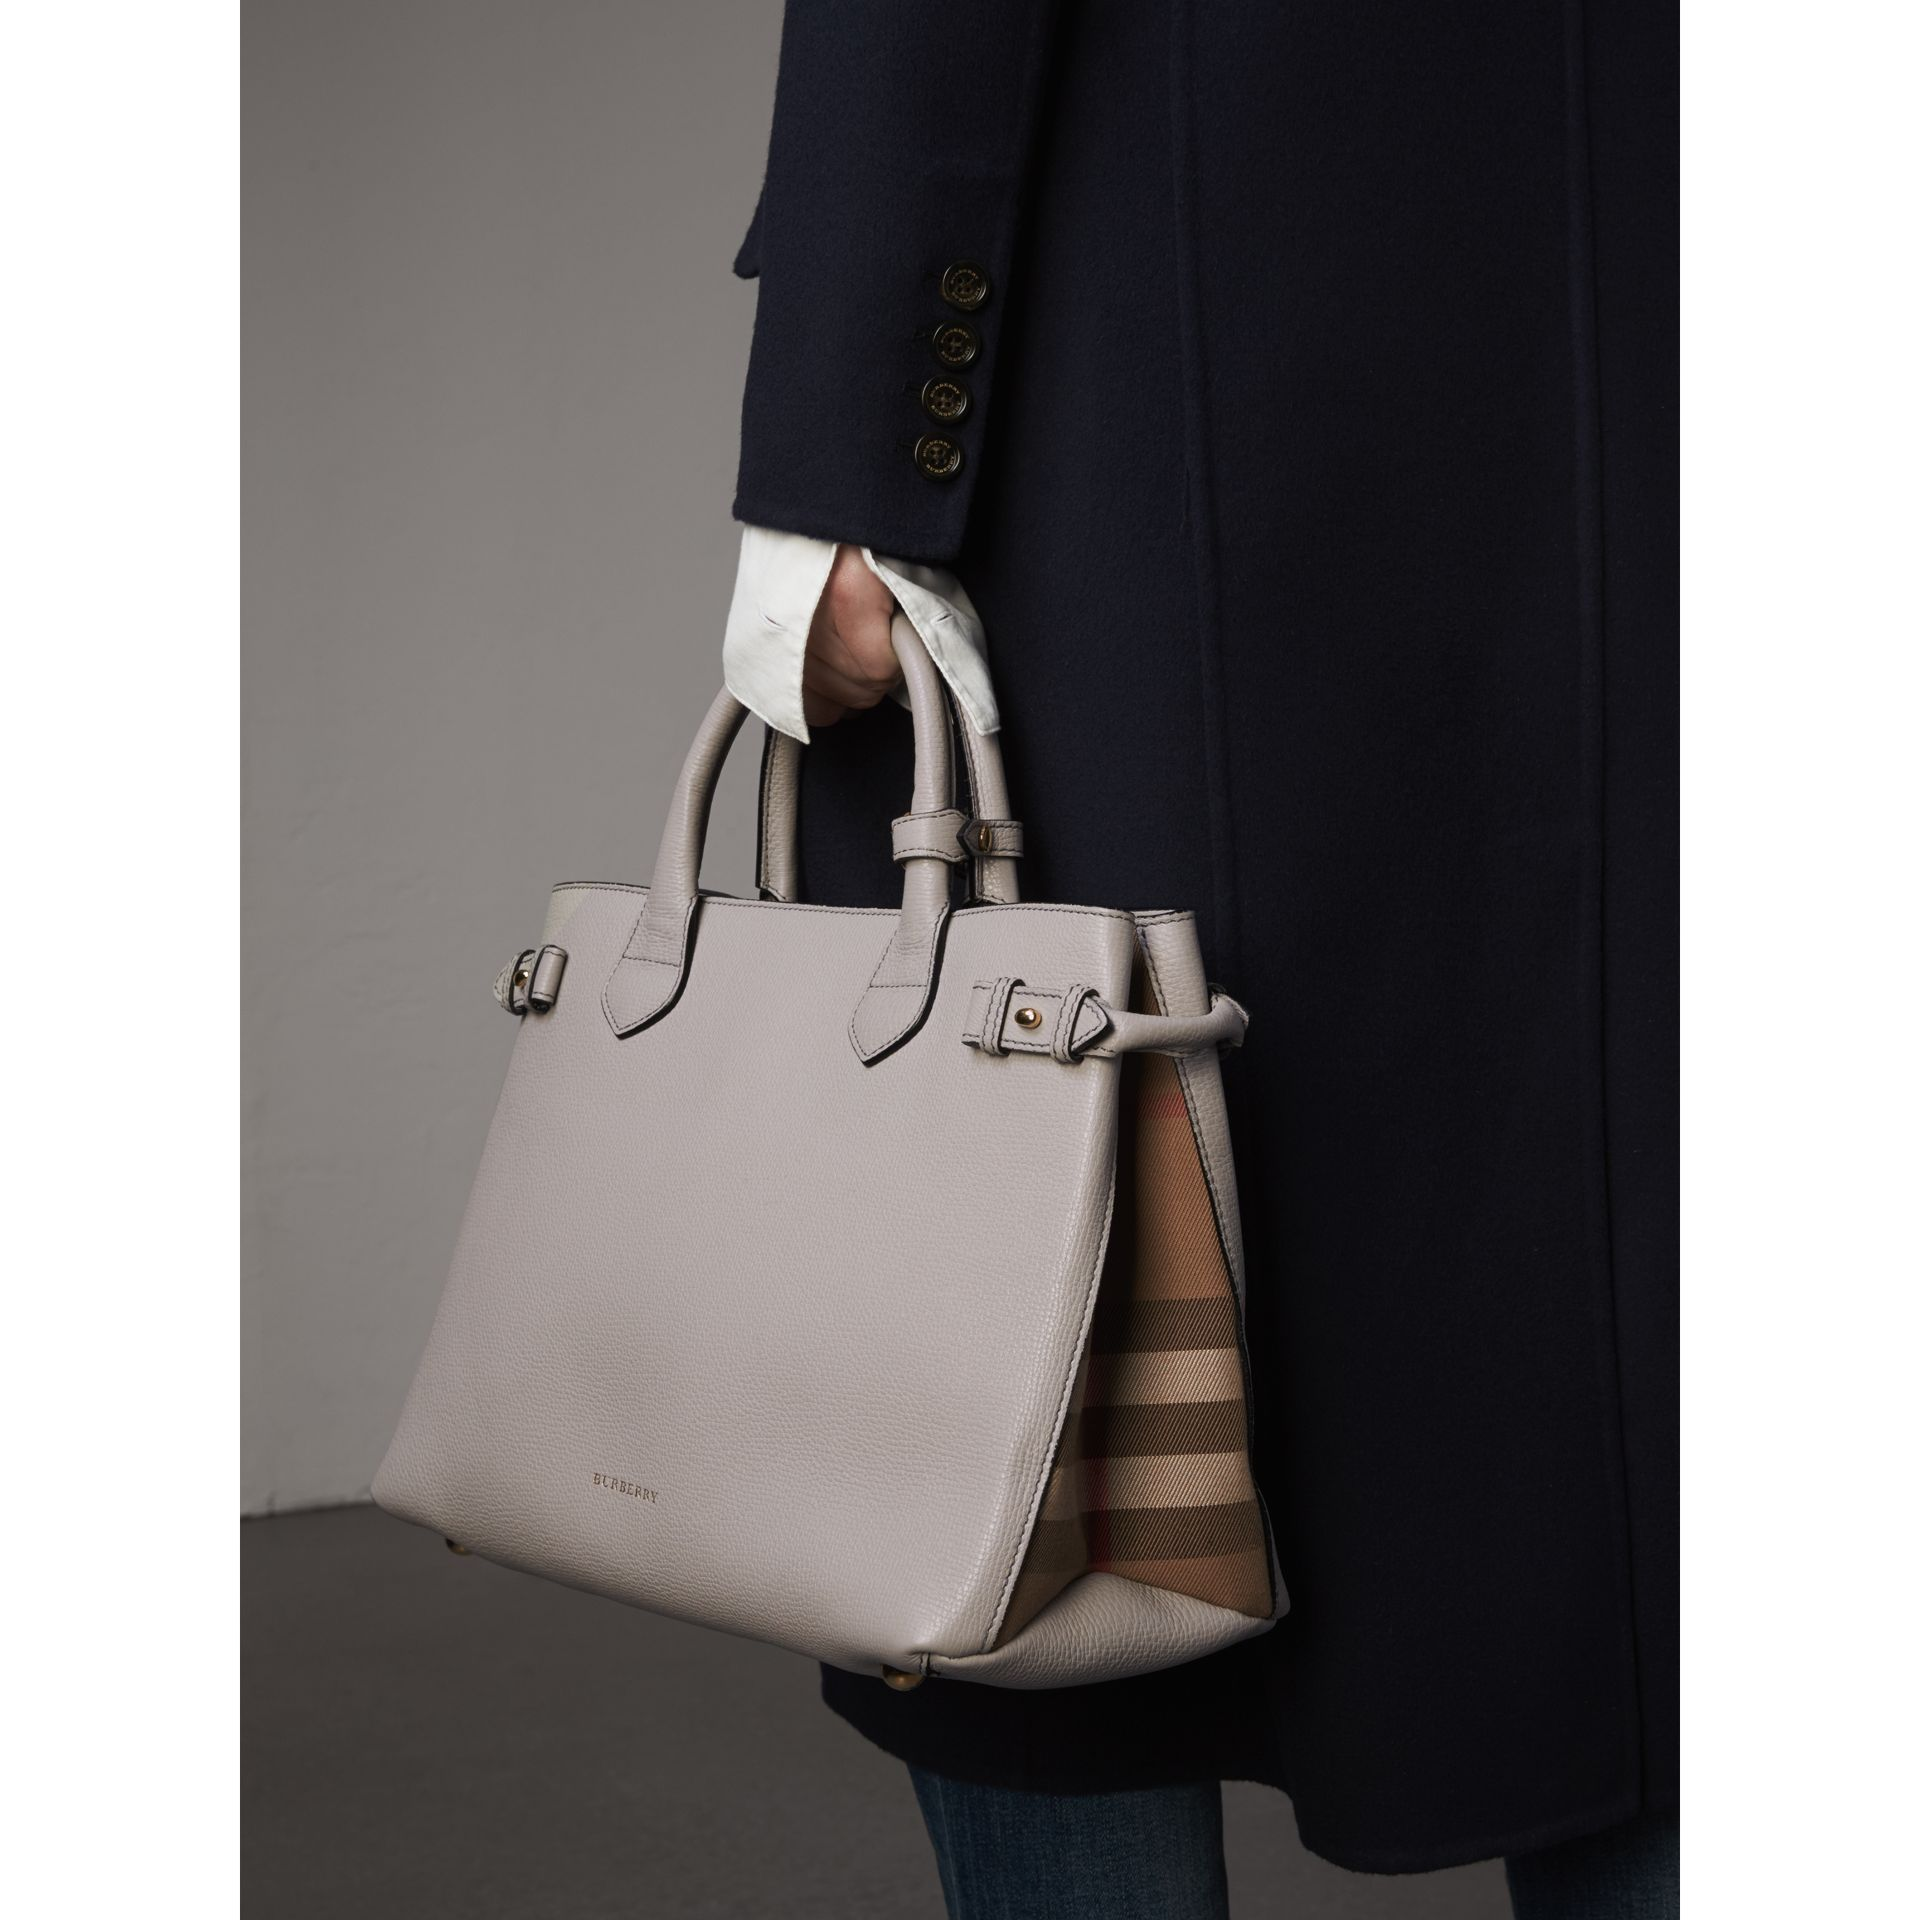 Sac The Banner medium en cuir et coton House check (Camaïeu De Gris Clairs) - Femme | Burberry Canada - photo de la galerie 3